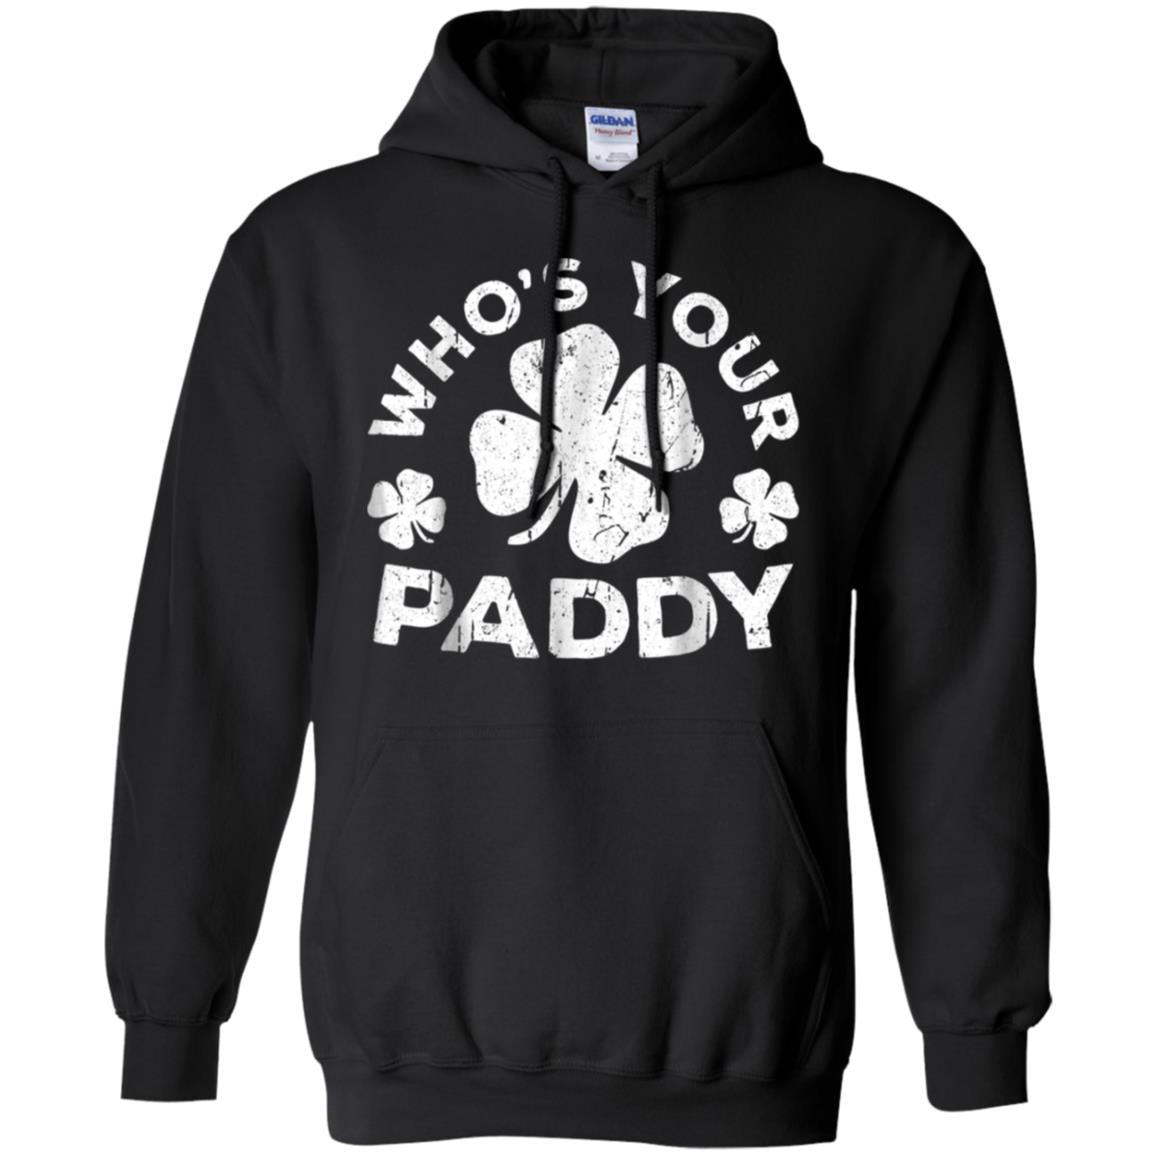 Whos Your Paddy T-Shirt St Patrick Day Gift Shirt Hoodie